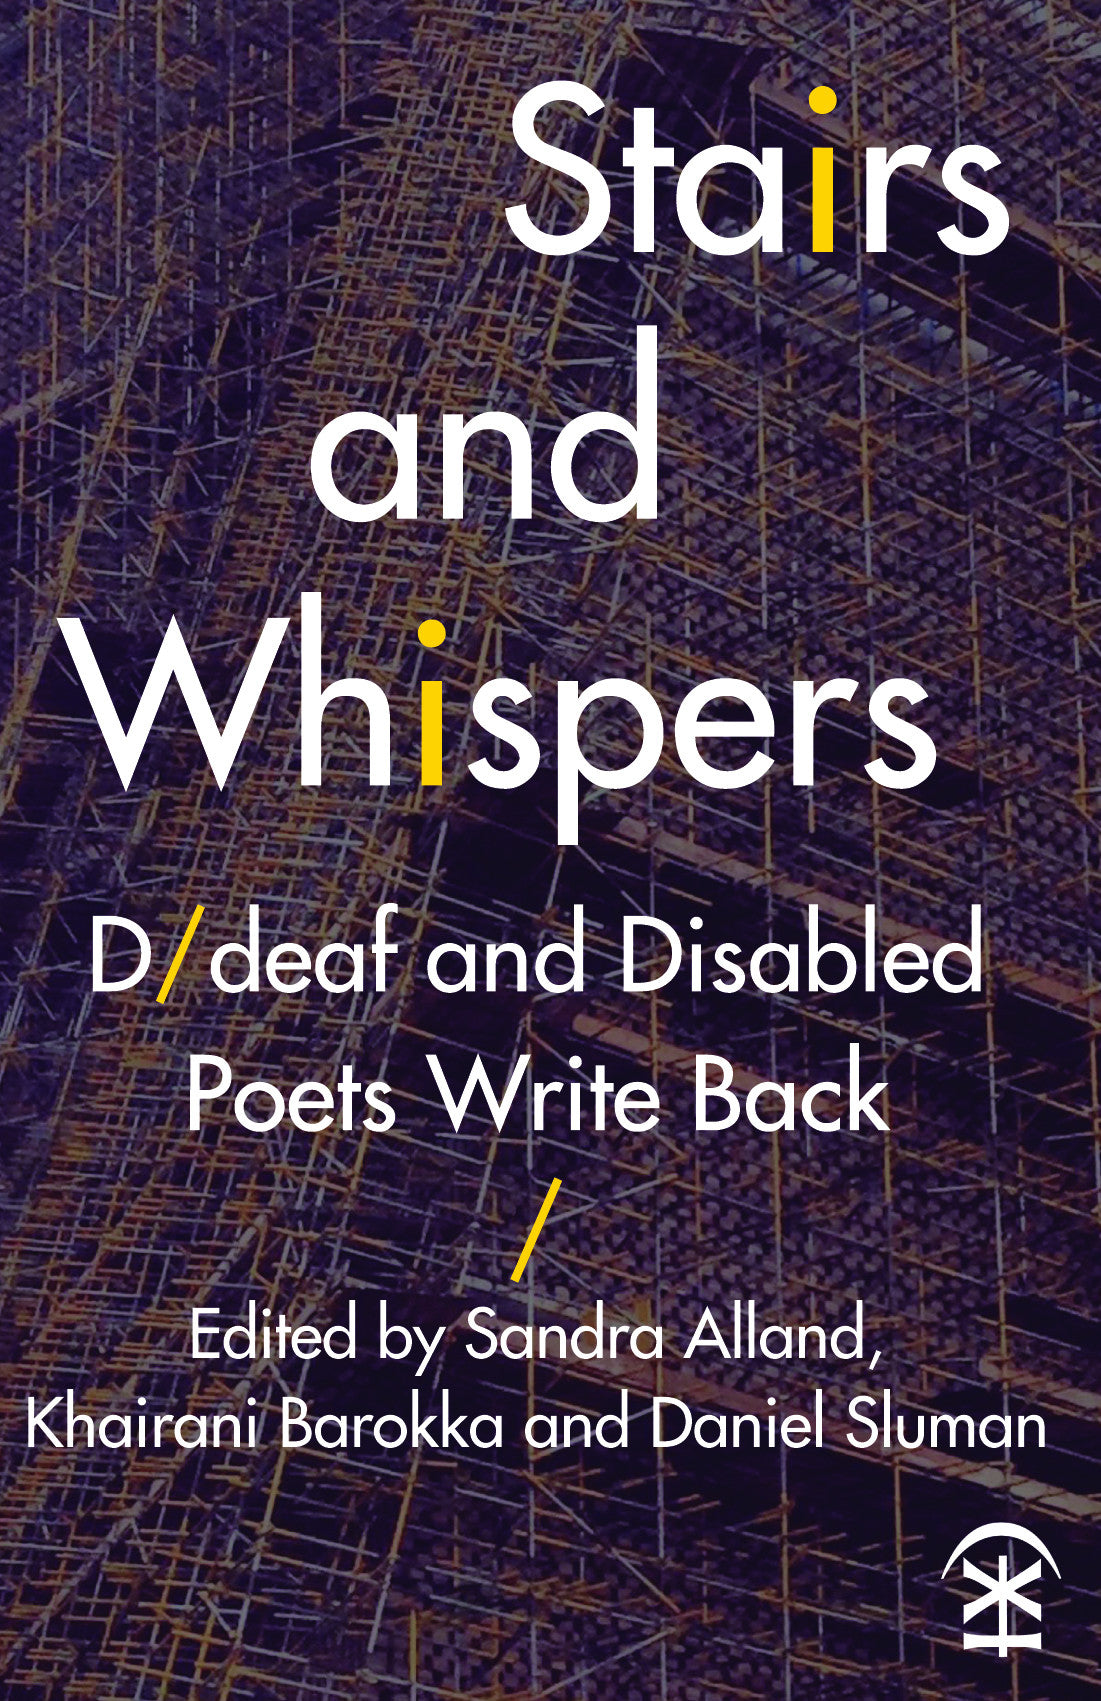 Stairs and Whispers: D/deaf and Disabled Poets Write Back